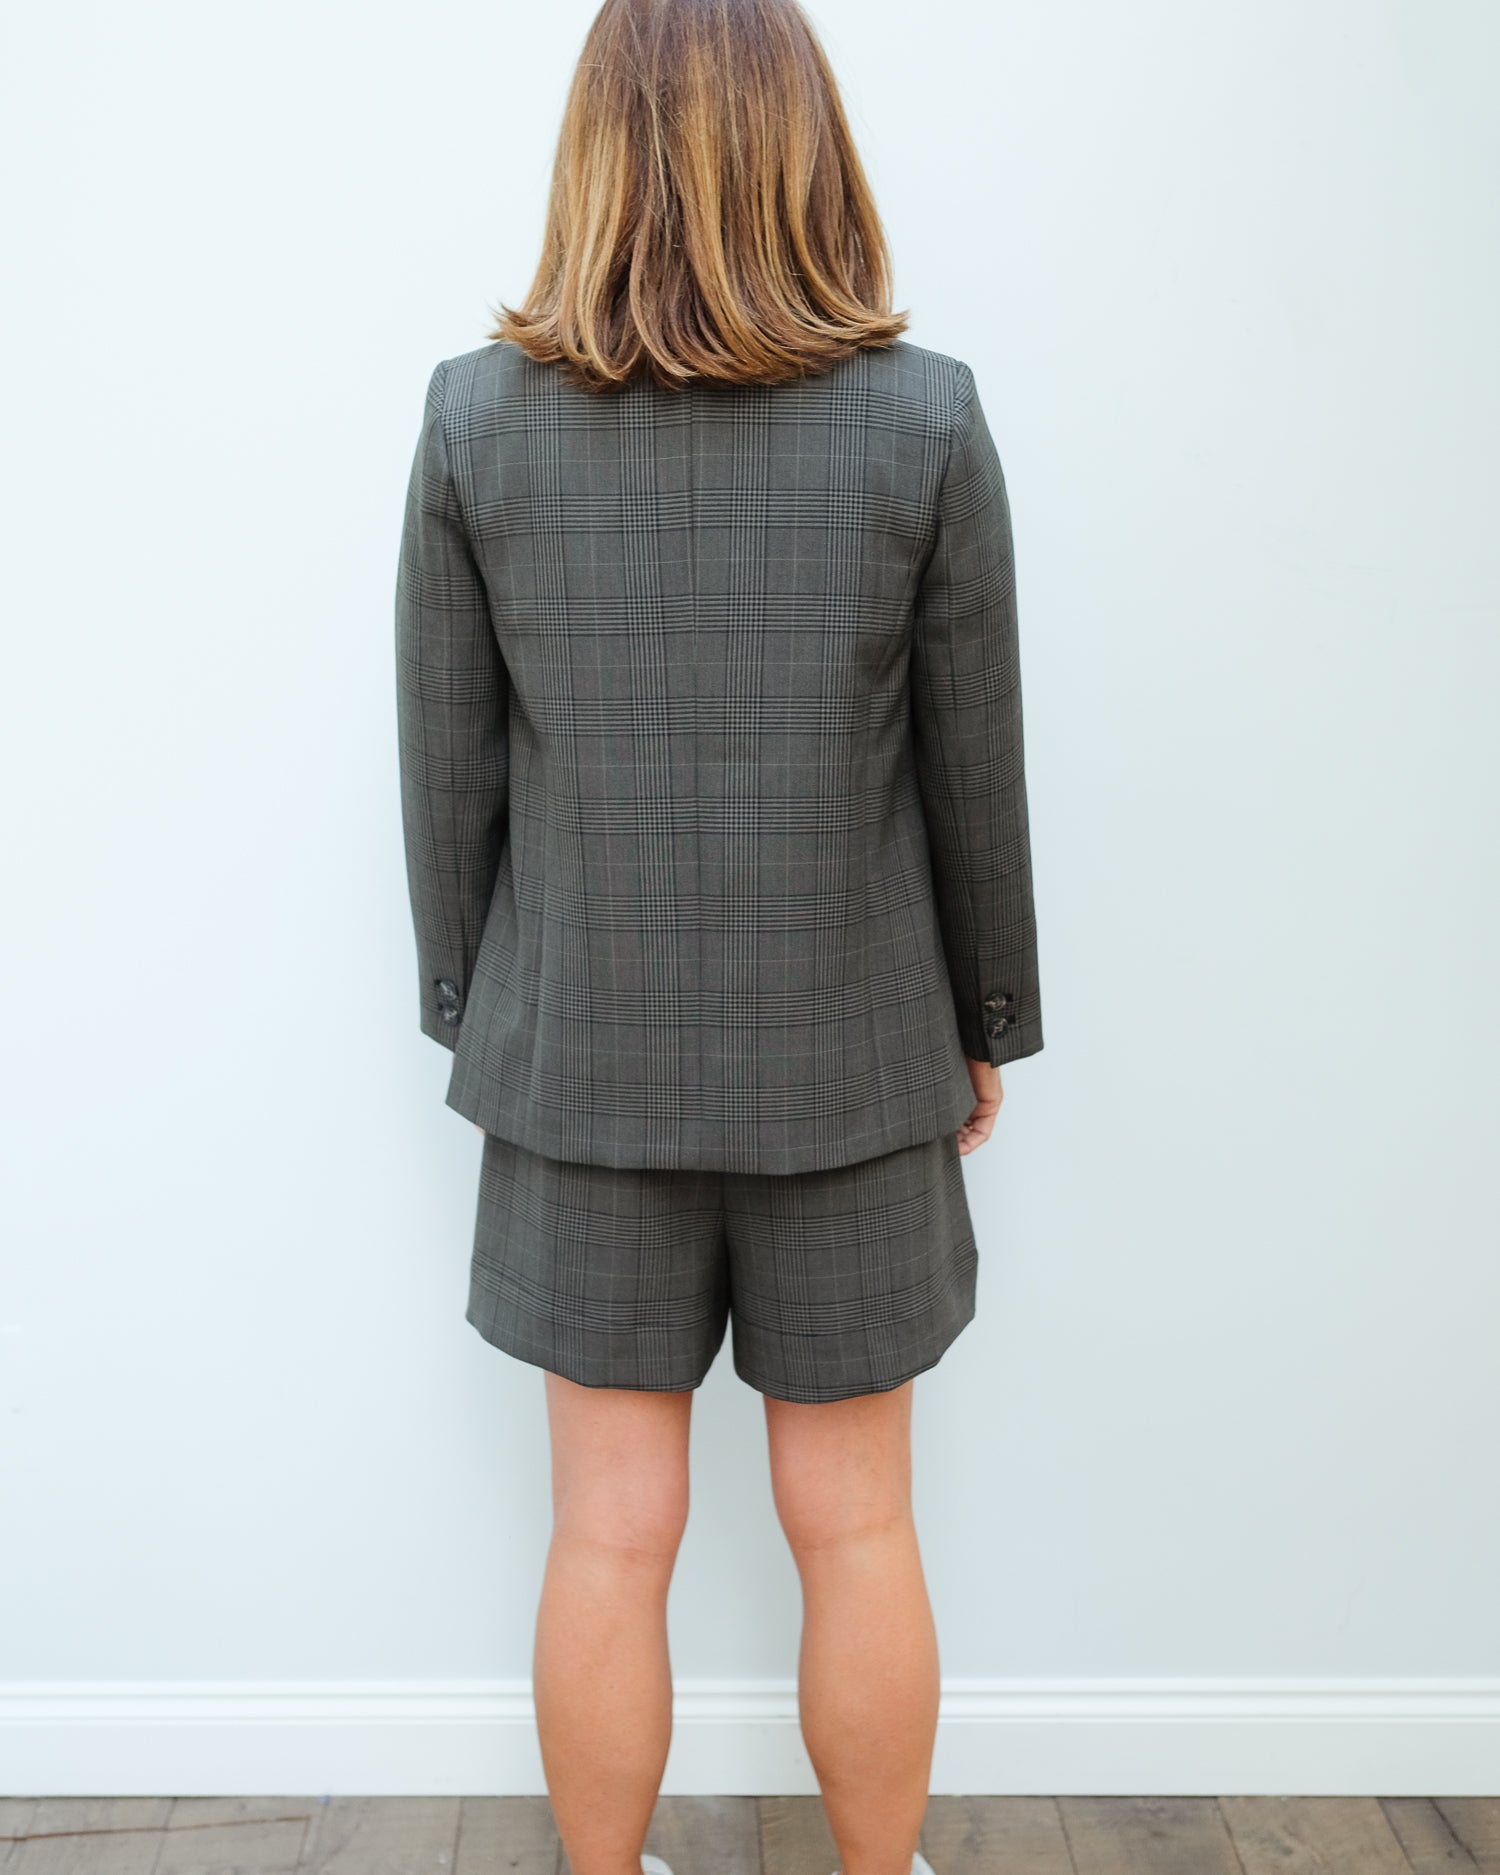 GANNI F4712 Suiting jacket in kalamata